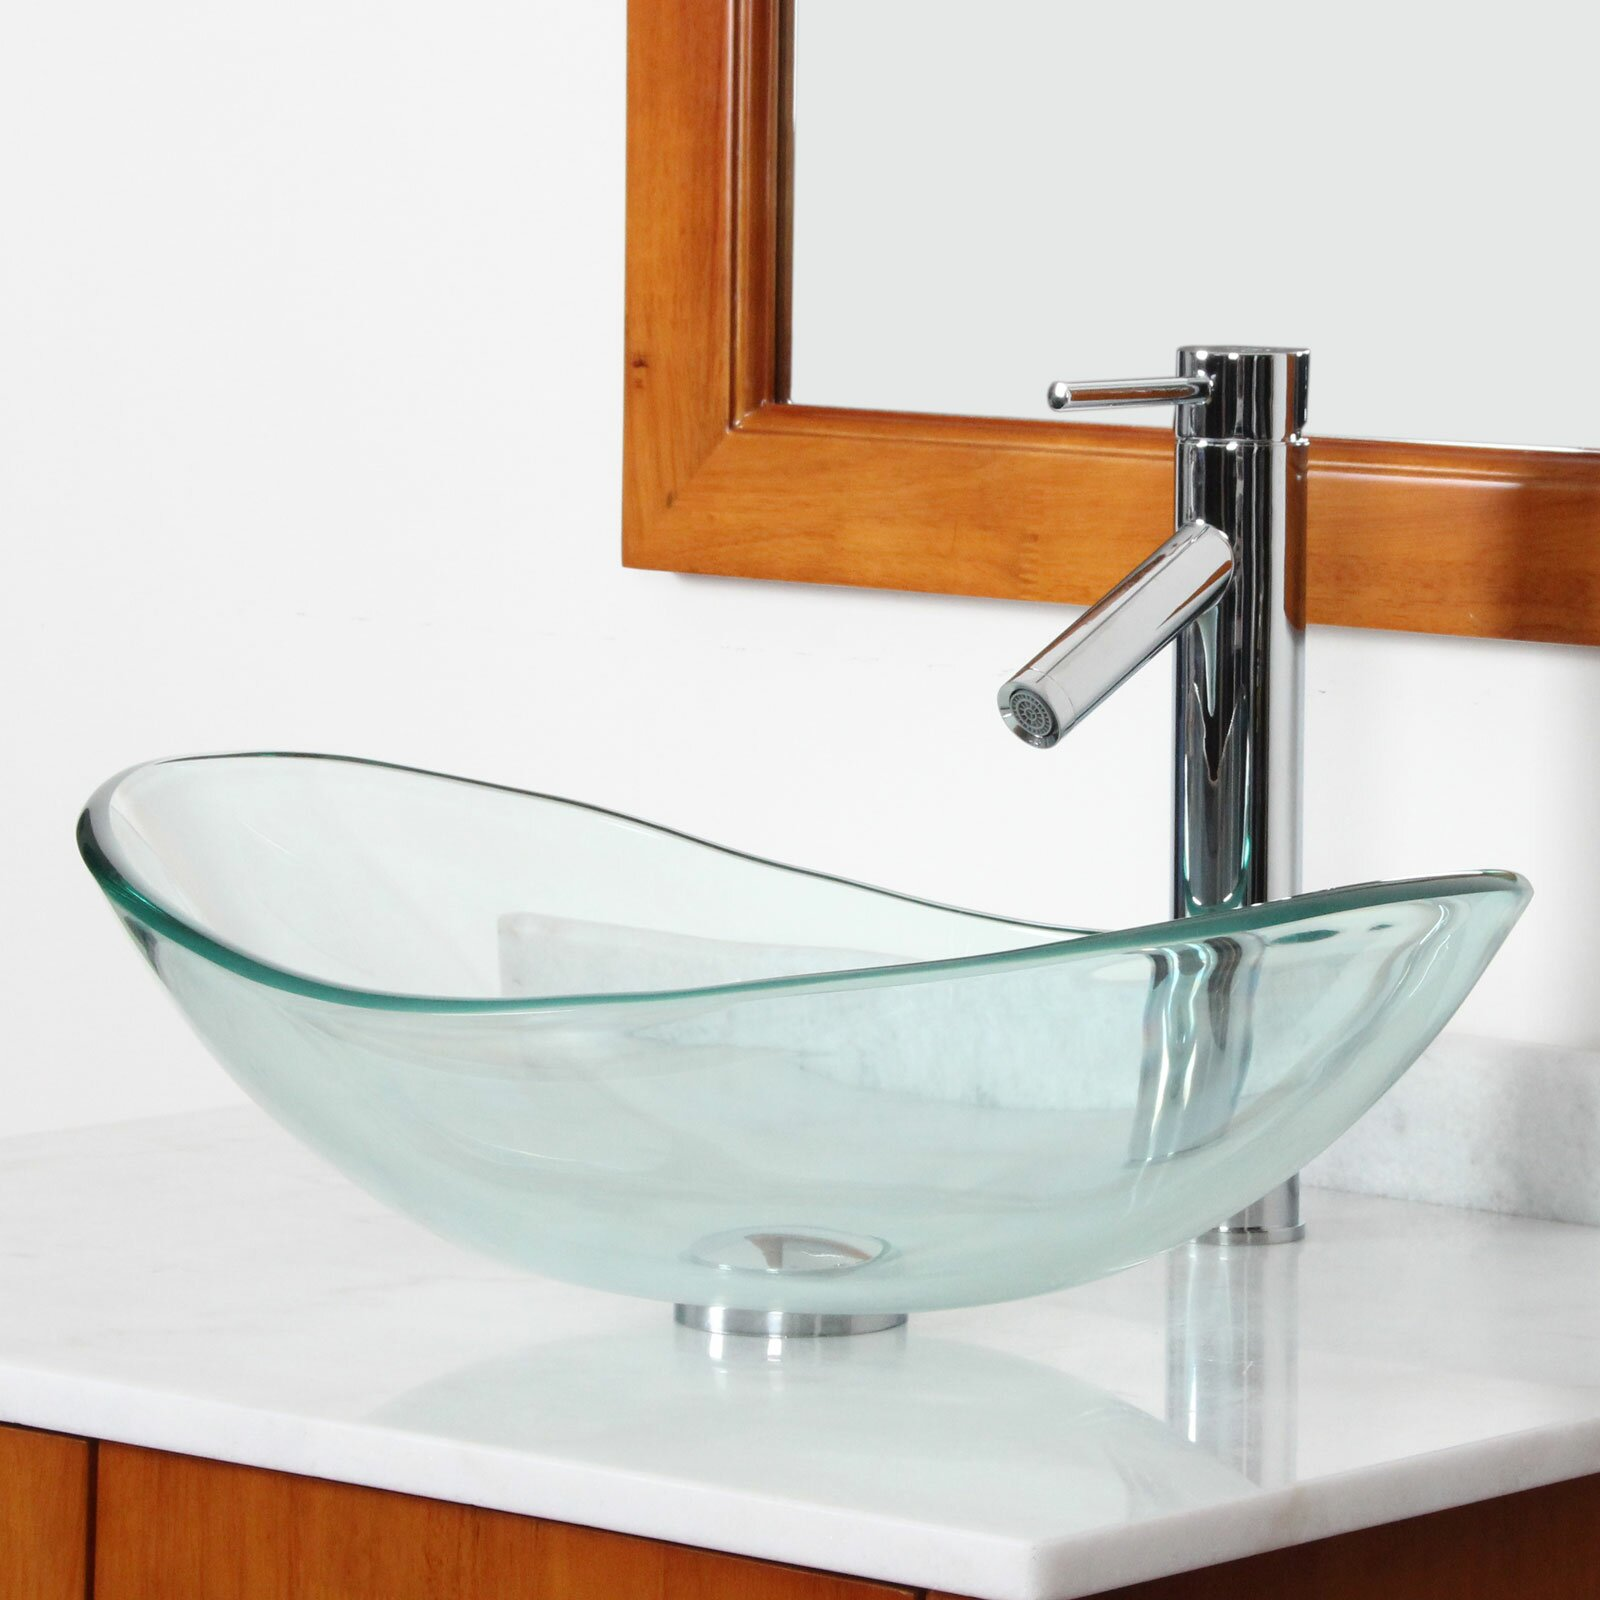 Tempered Glass Vessel Sink : Elite Tempered Glass Boat Shaped Bowl Vessel Bathroom Sink & Reviews ...